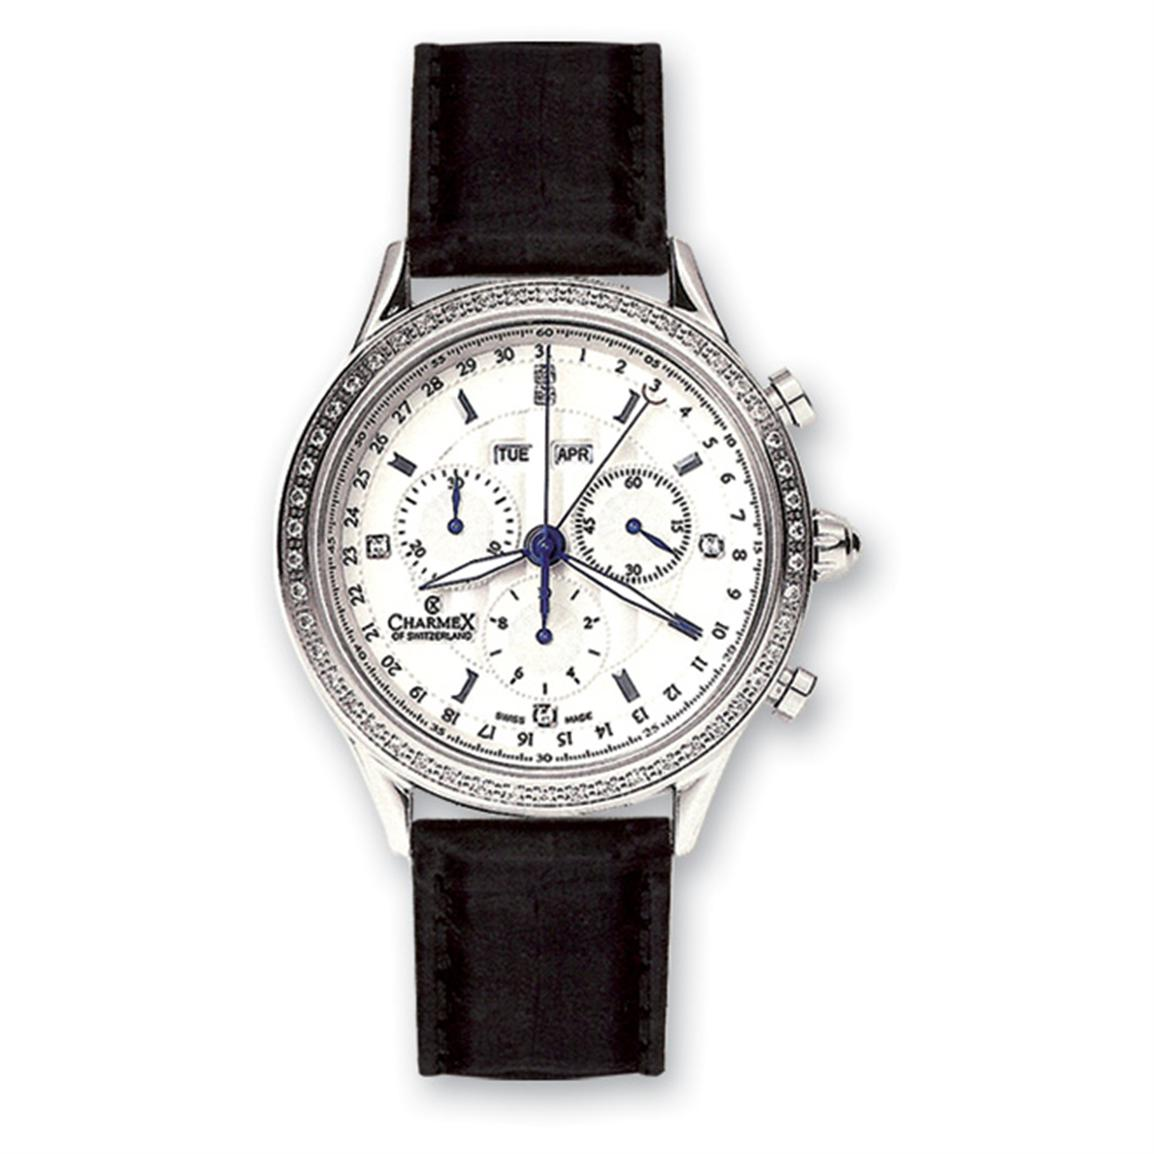 Men's Charmex Chronograph Watch with Genuine Leather Band, Stainless Steel